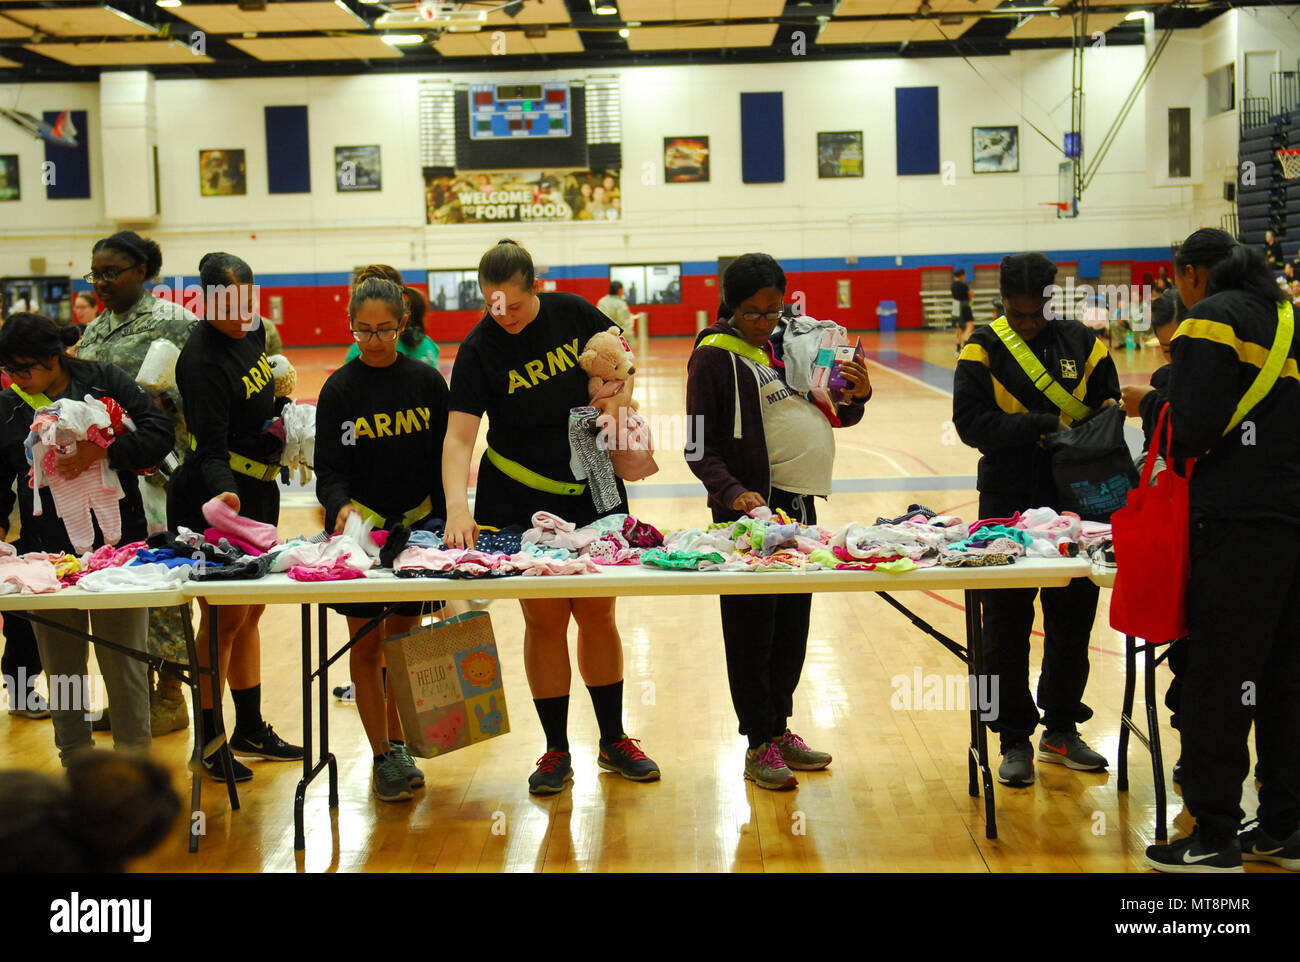 Female Soldiers from Pregnancy Postpartum Physical Training (P3T) look at baby clothes during P3T Mother's Day baby clothing swap on Friday at Abrams gym. - Stock Image